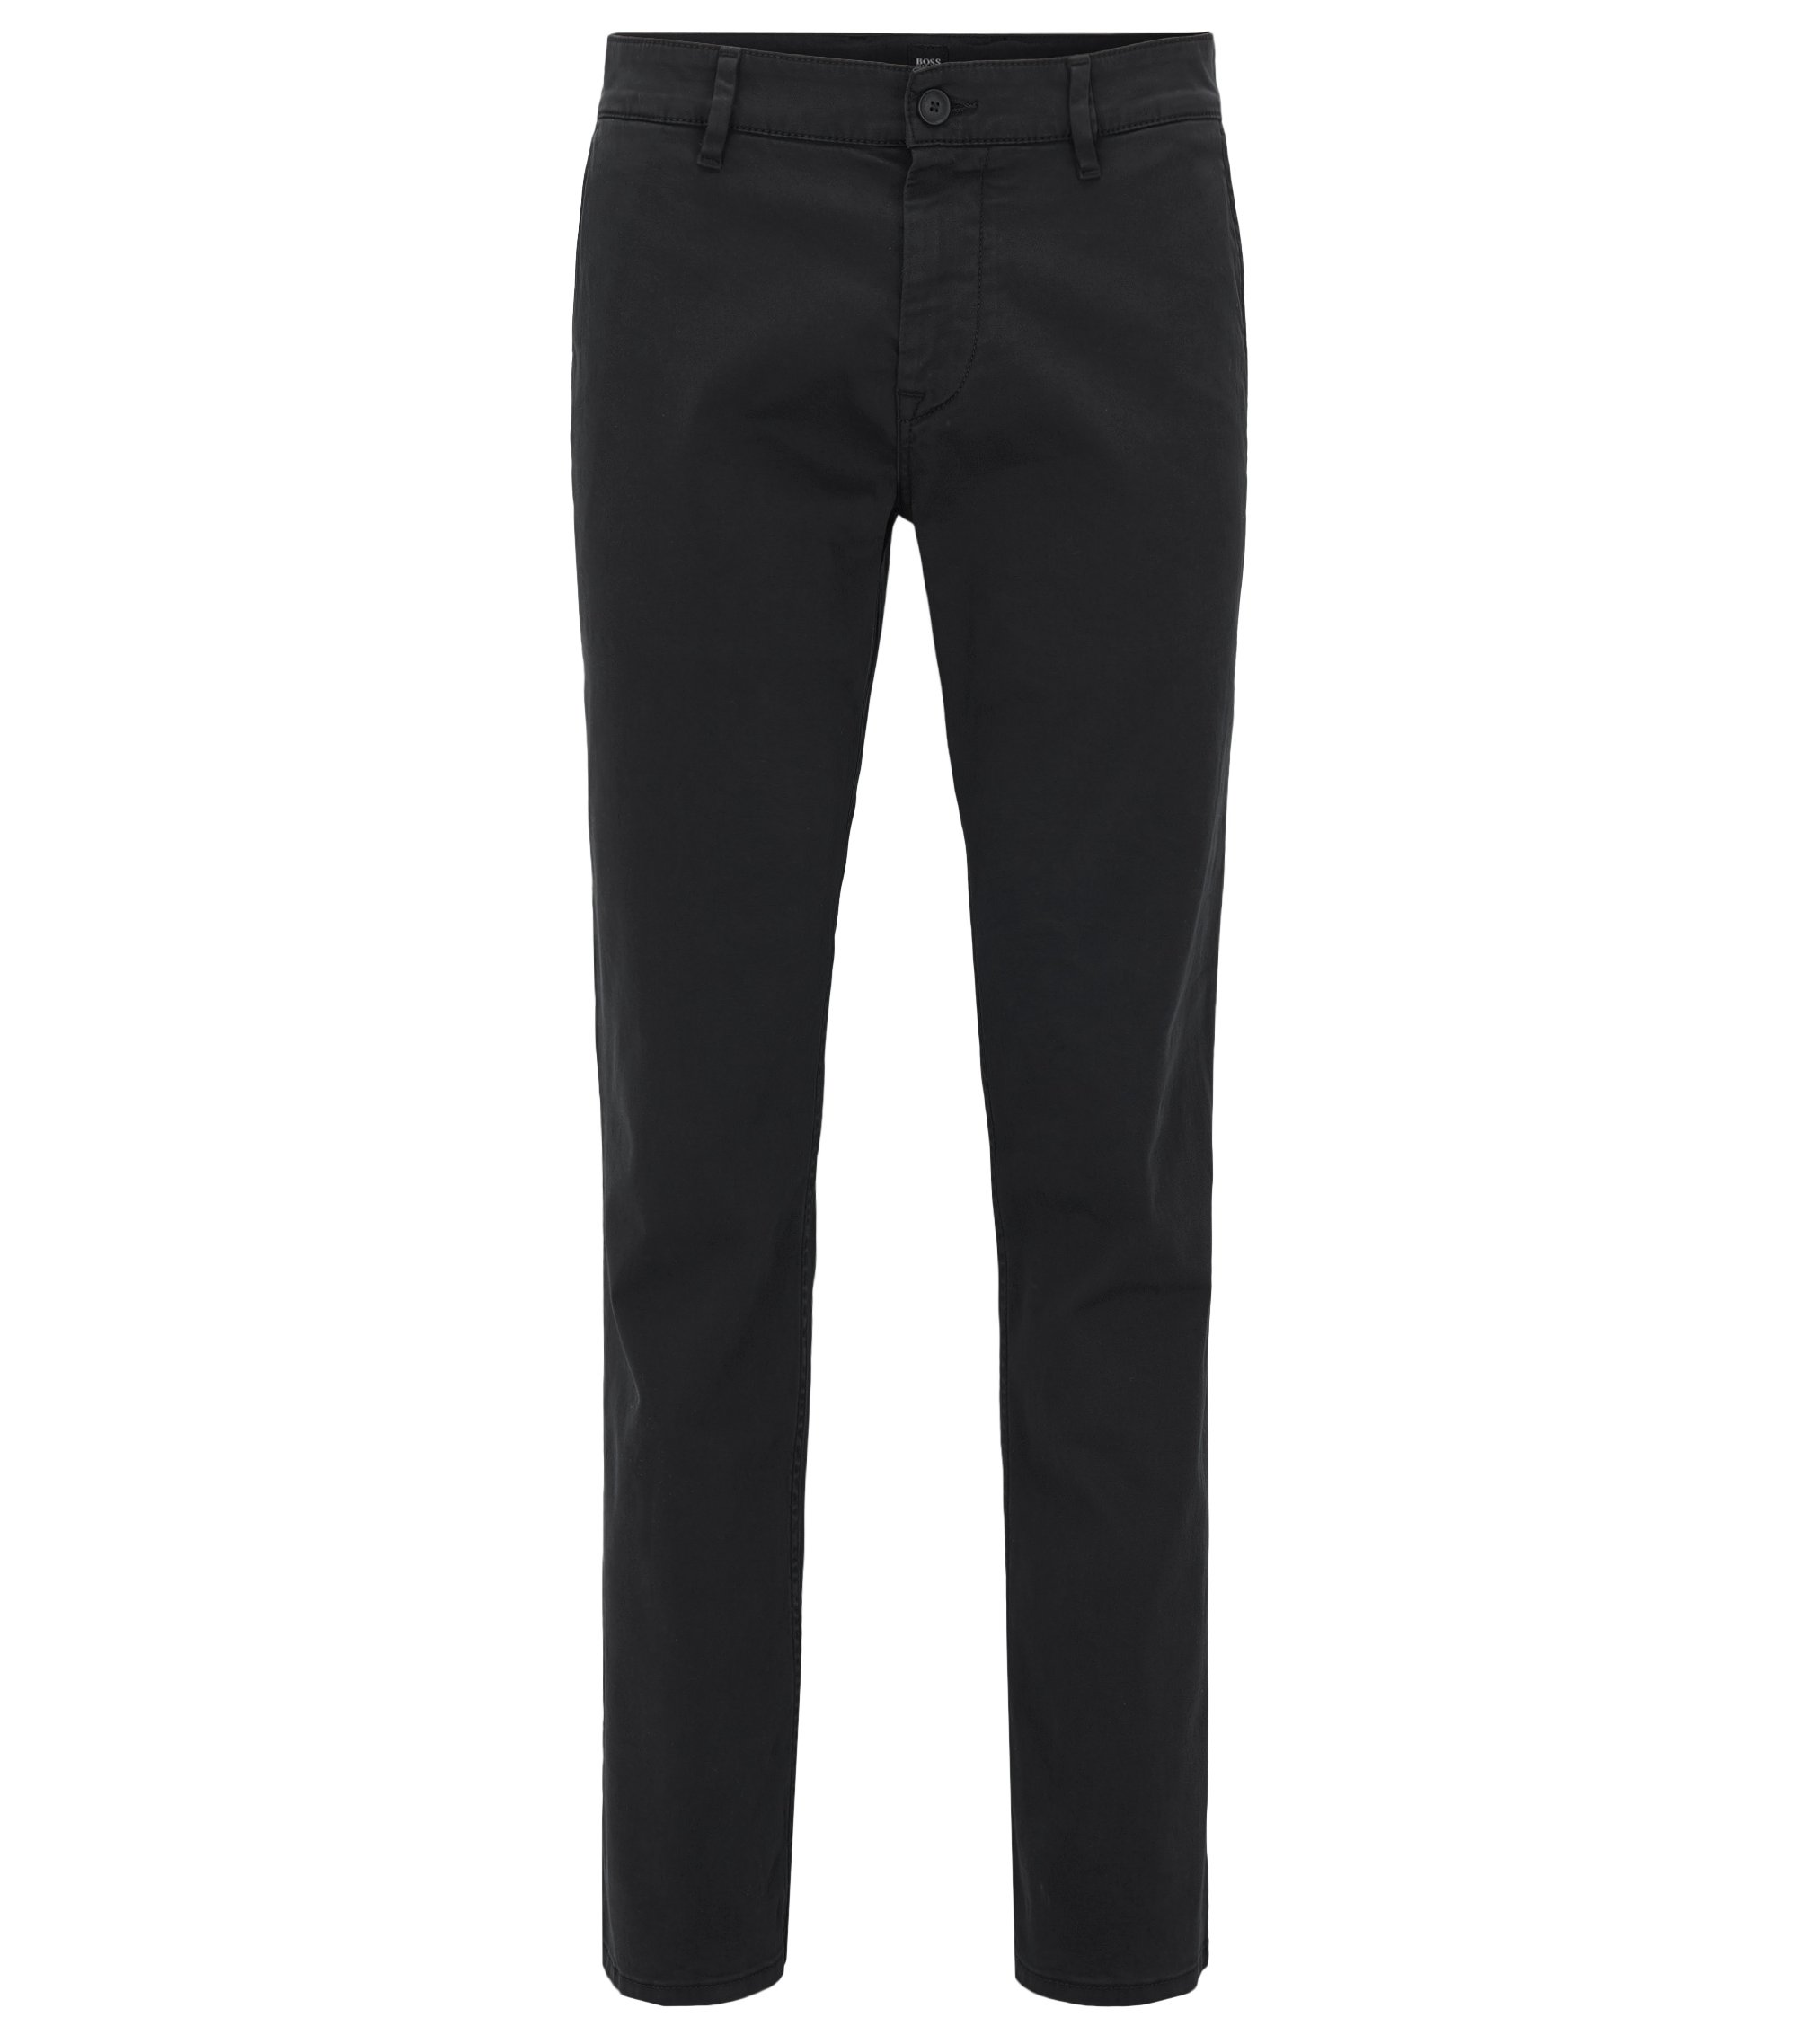 Pantalon Regular Fit en coton stretch gratté, Noir